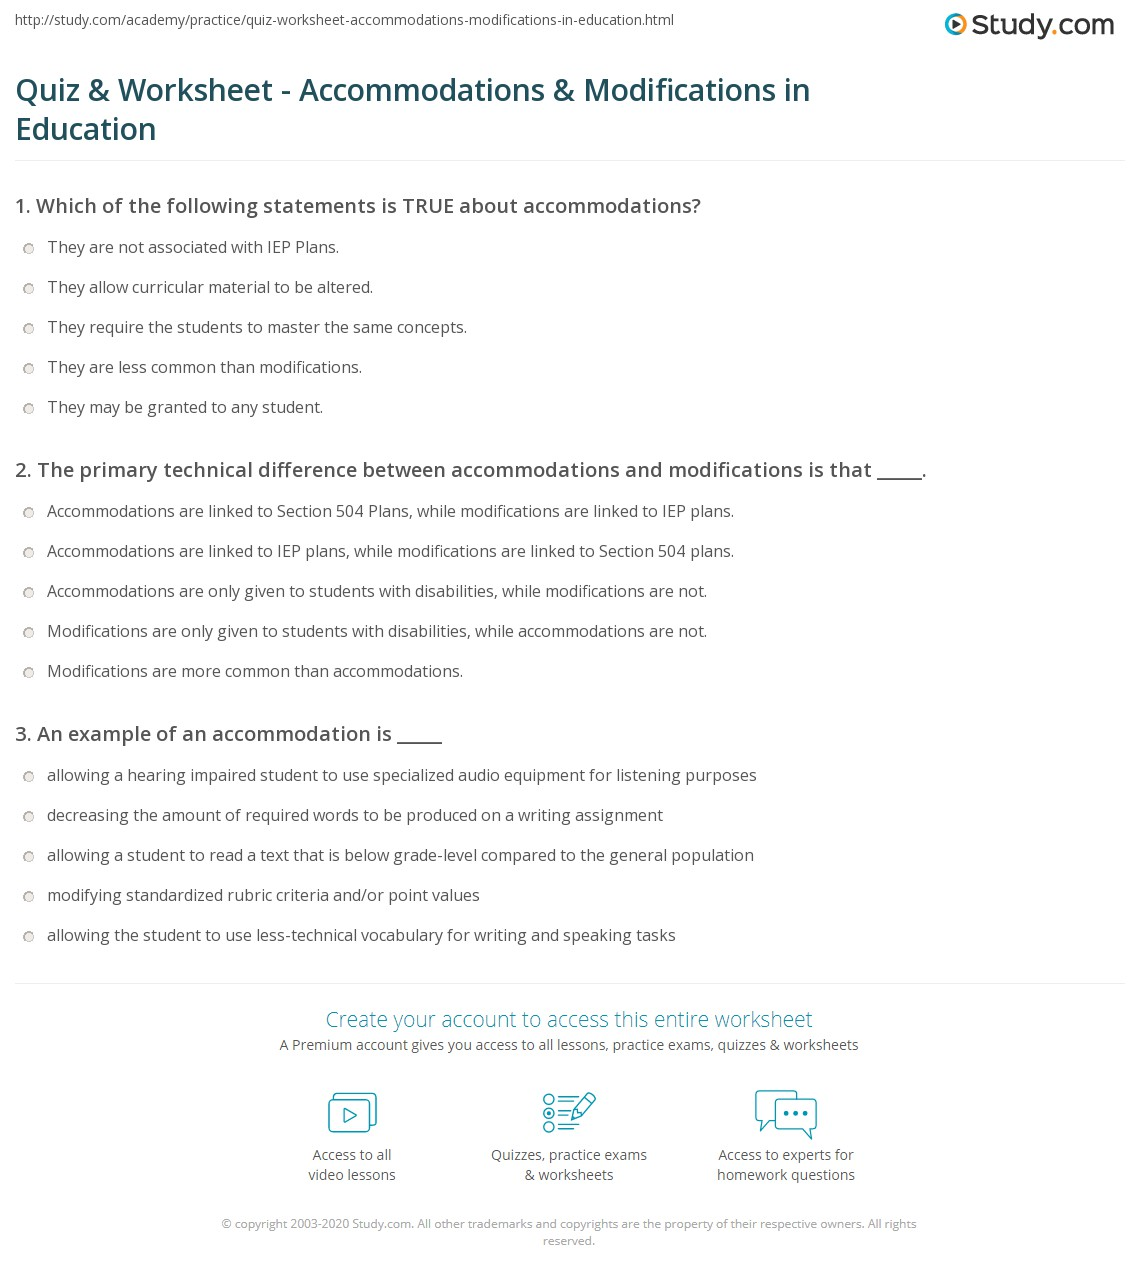 Workbooks quiz worksheets : Quiz & Worksheet - Accommodations & Modifications in Education ...